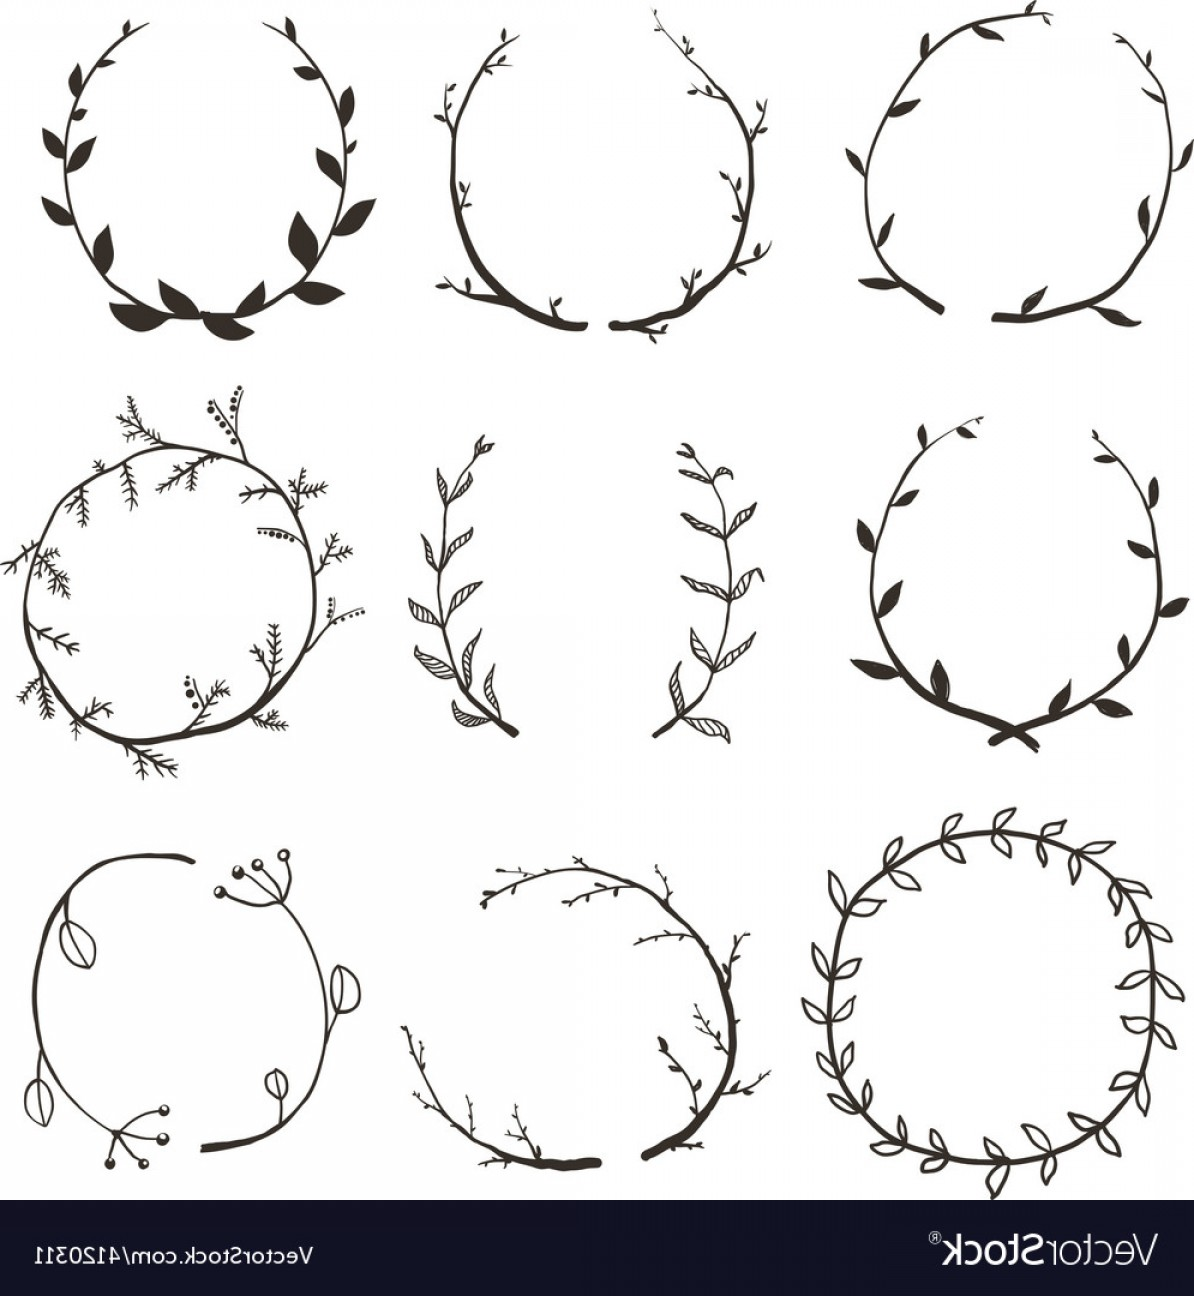 Single Vector Rustic: Rustic Laurel And Wreath Collection For Design Vector